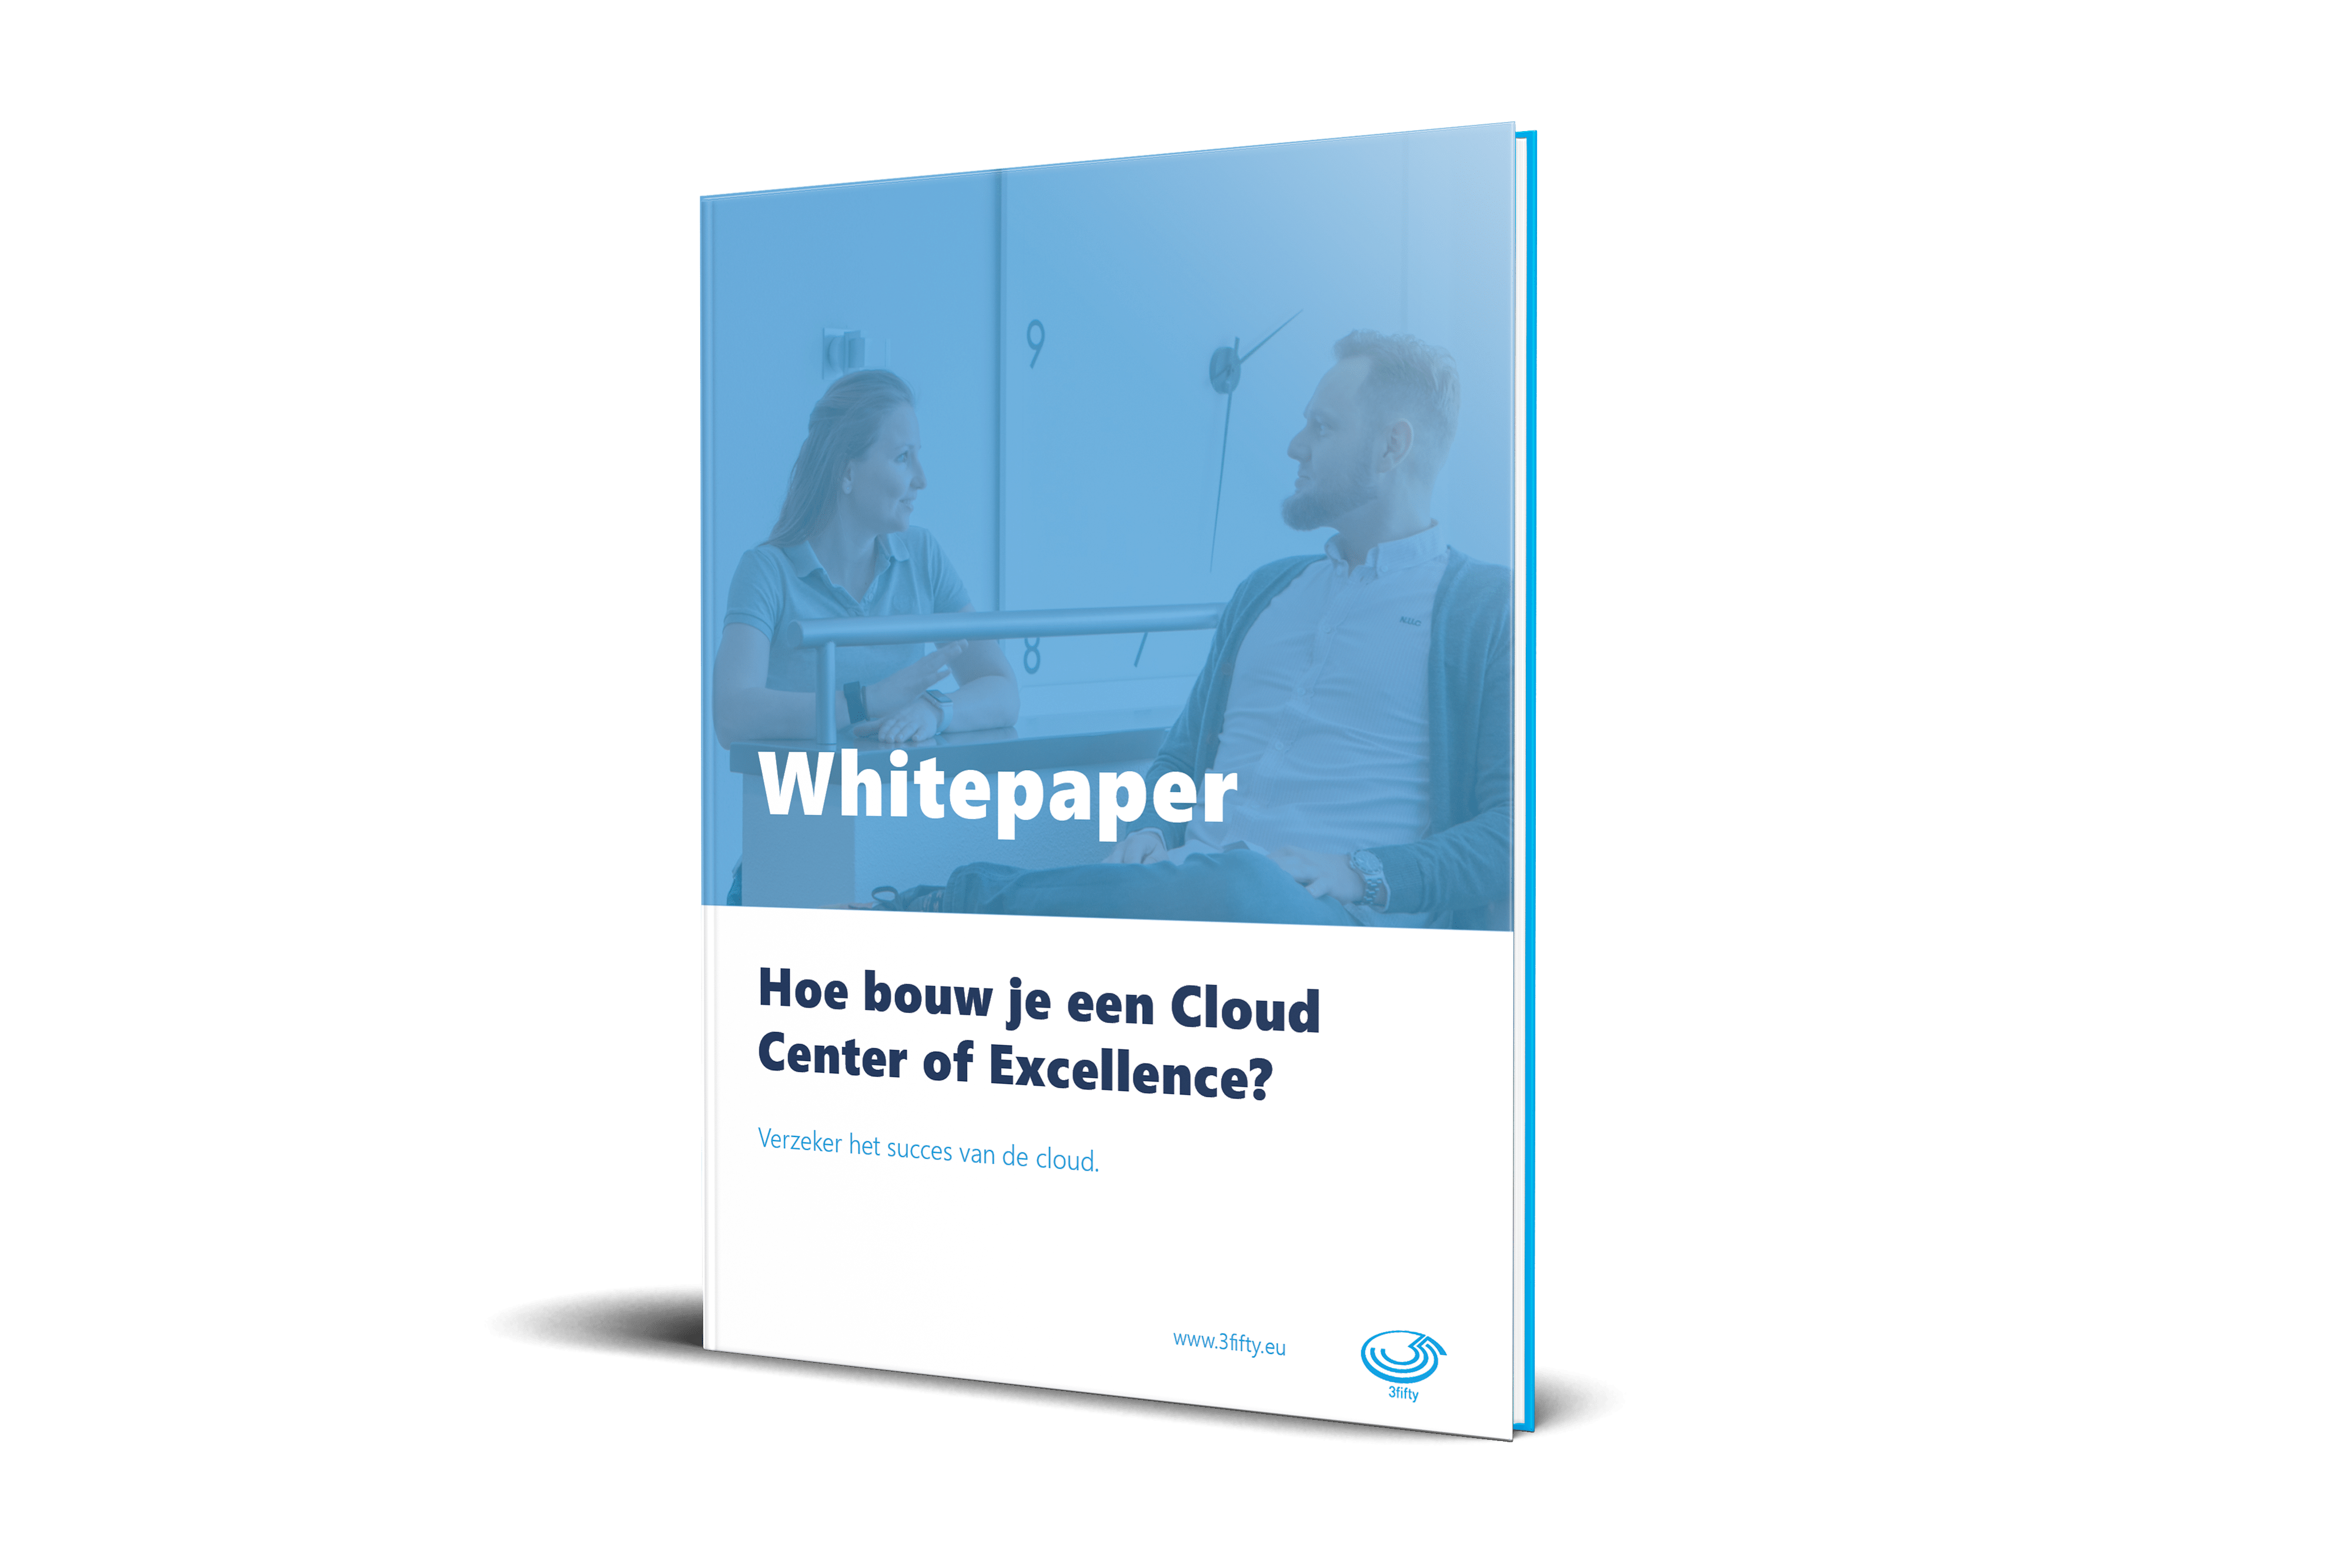 whitepaper-cloud-center-of-excellence-03-nobackdrop